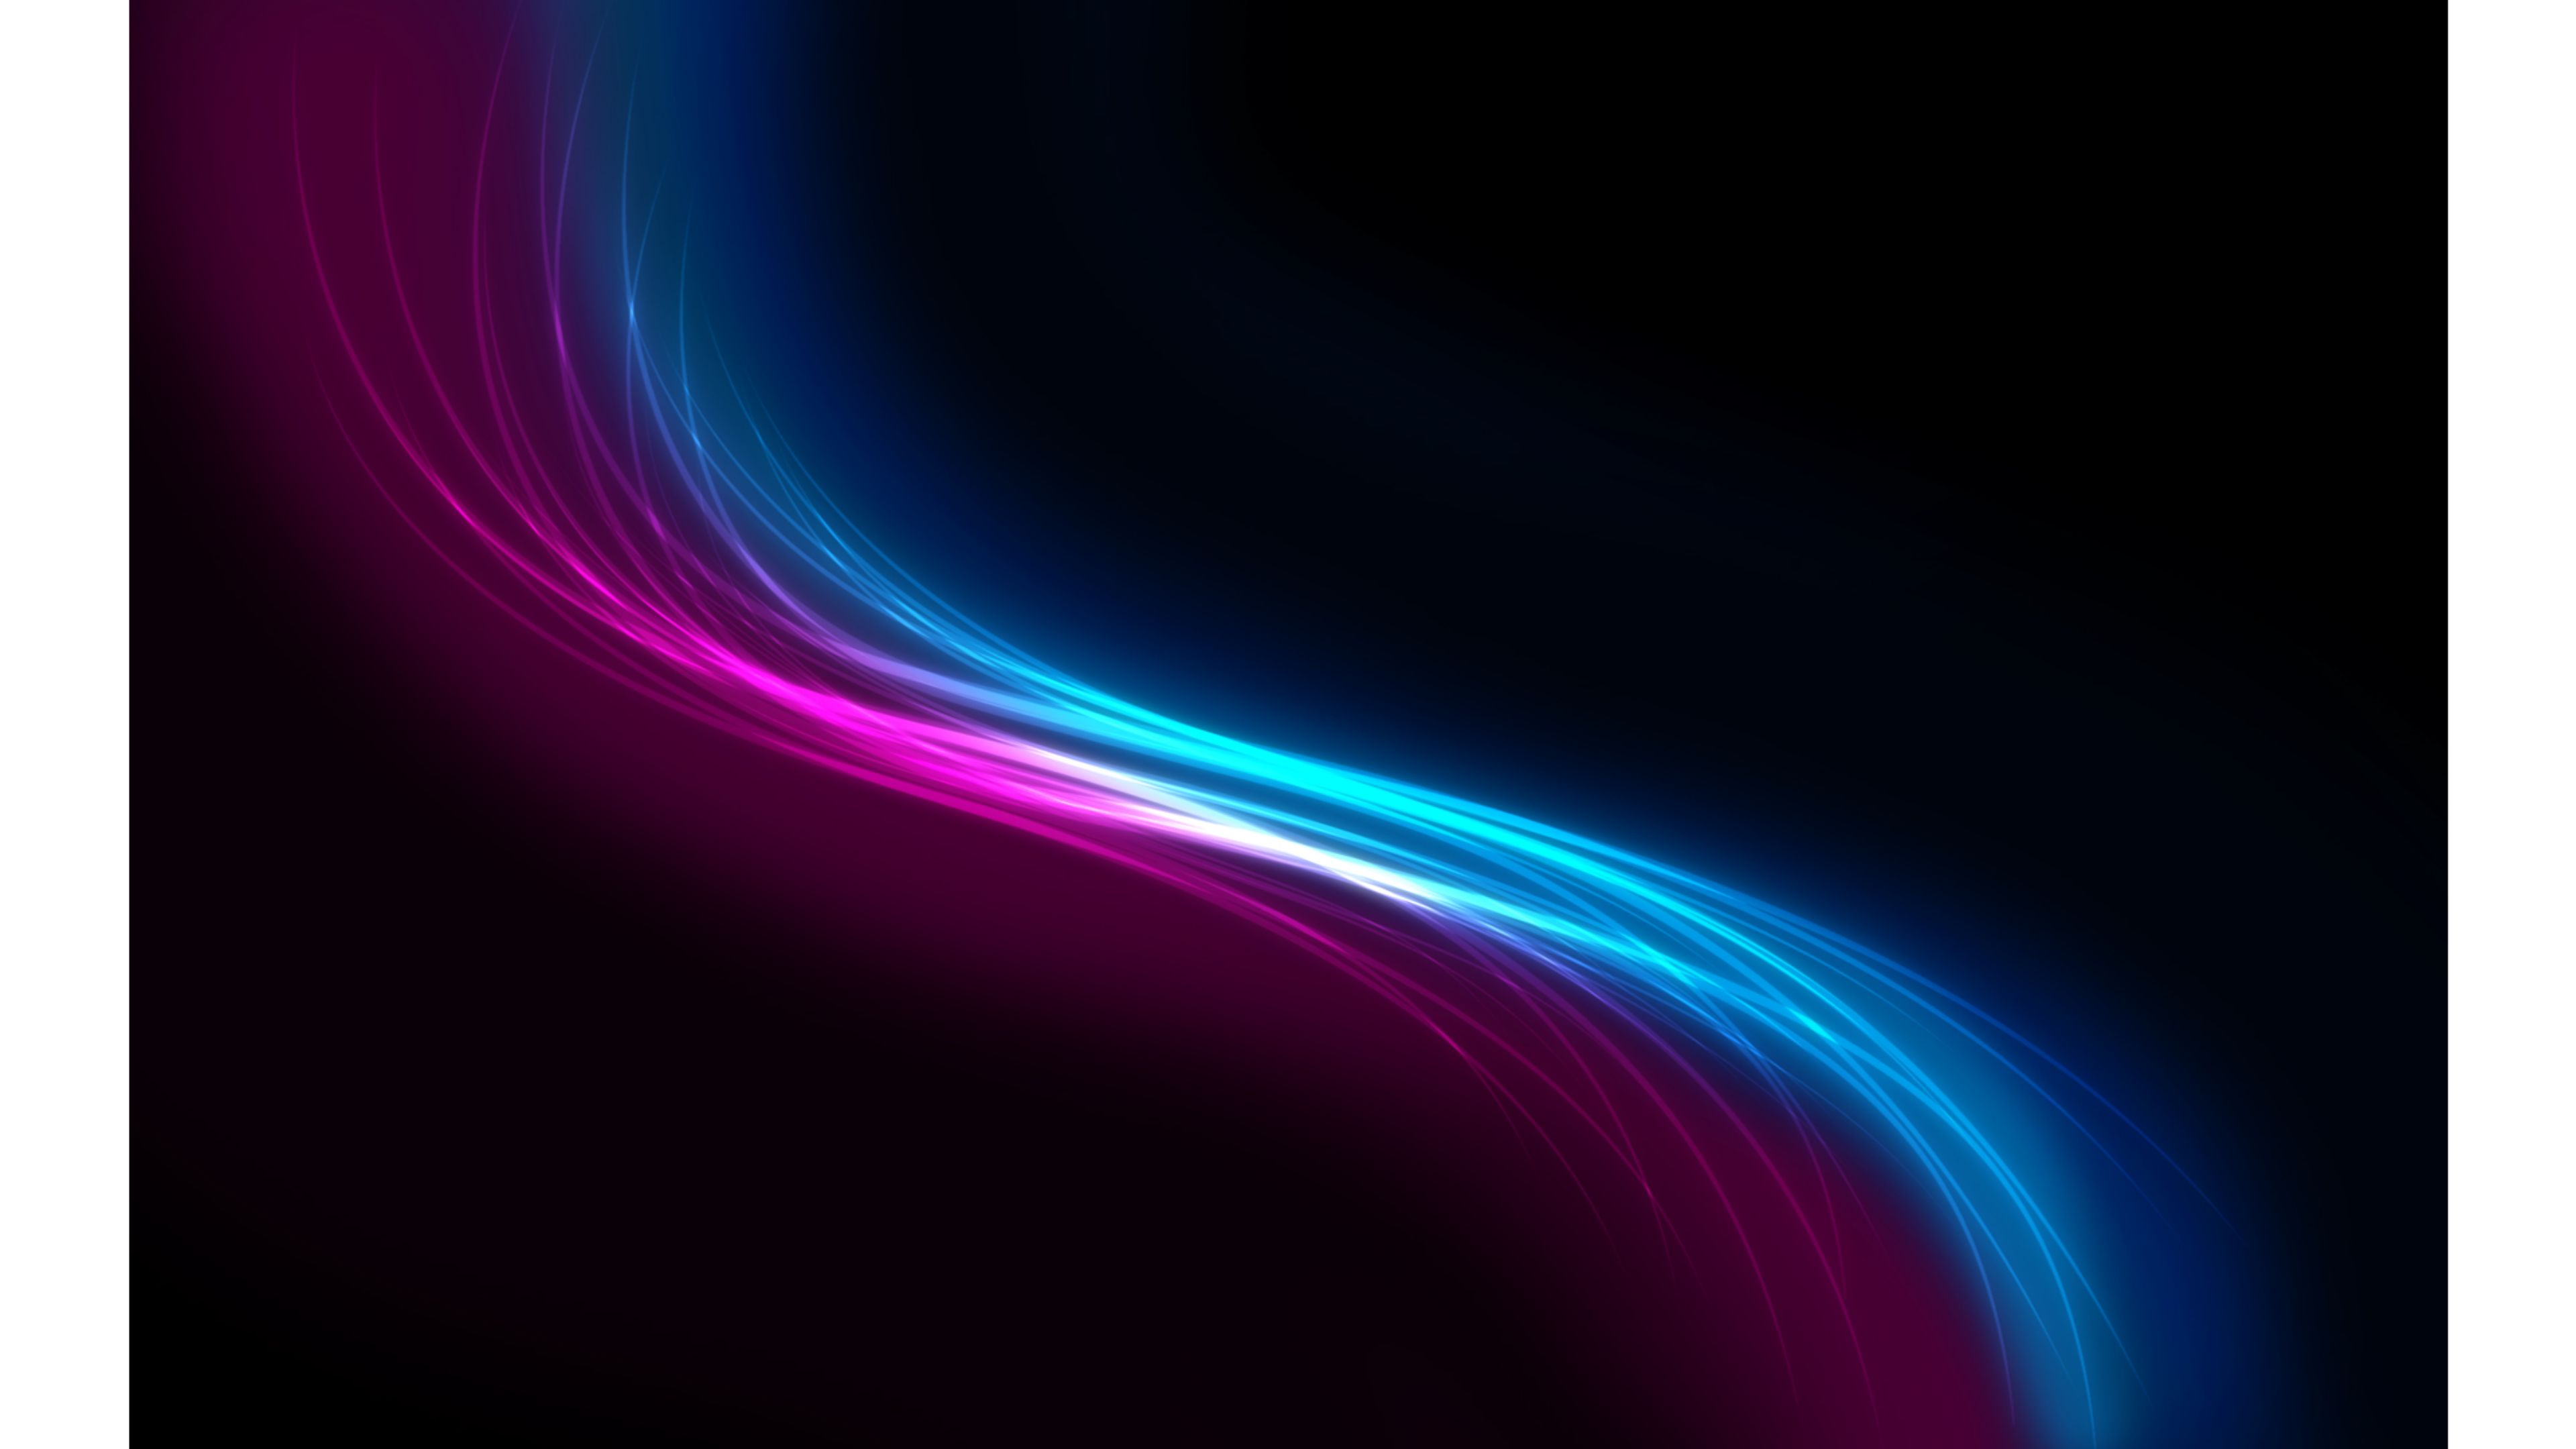 Wave Abstract S 4k Wallpaper